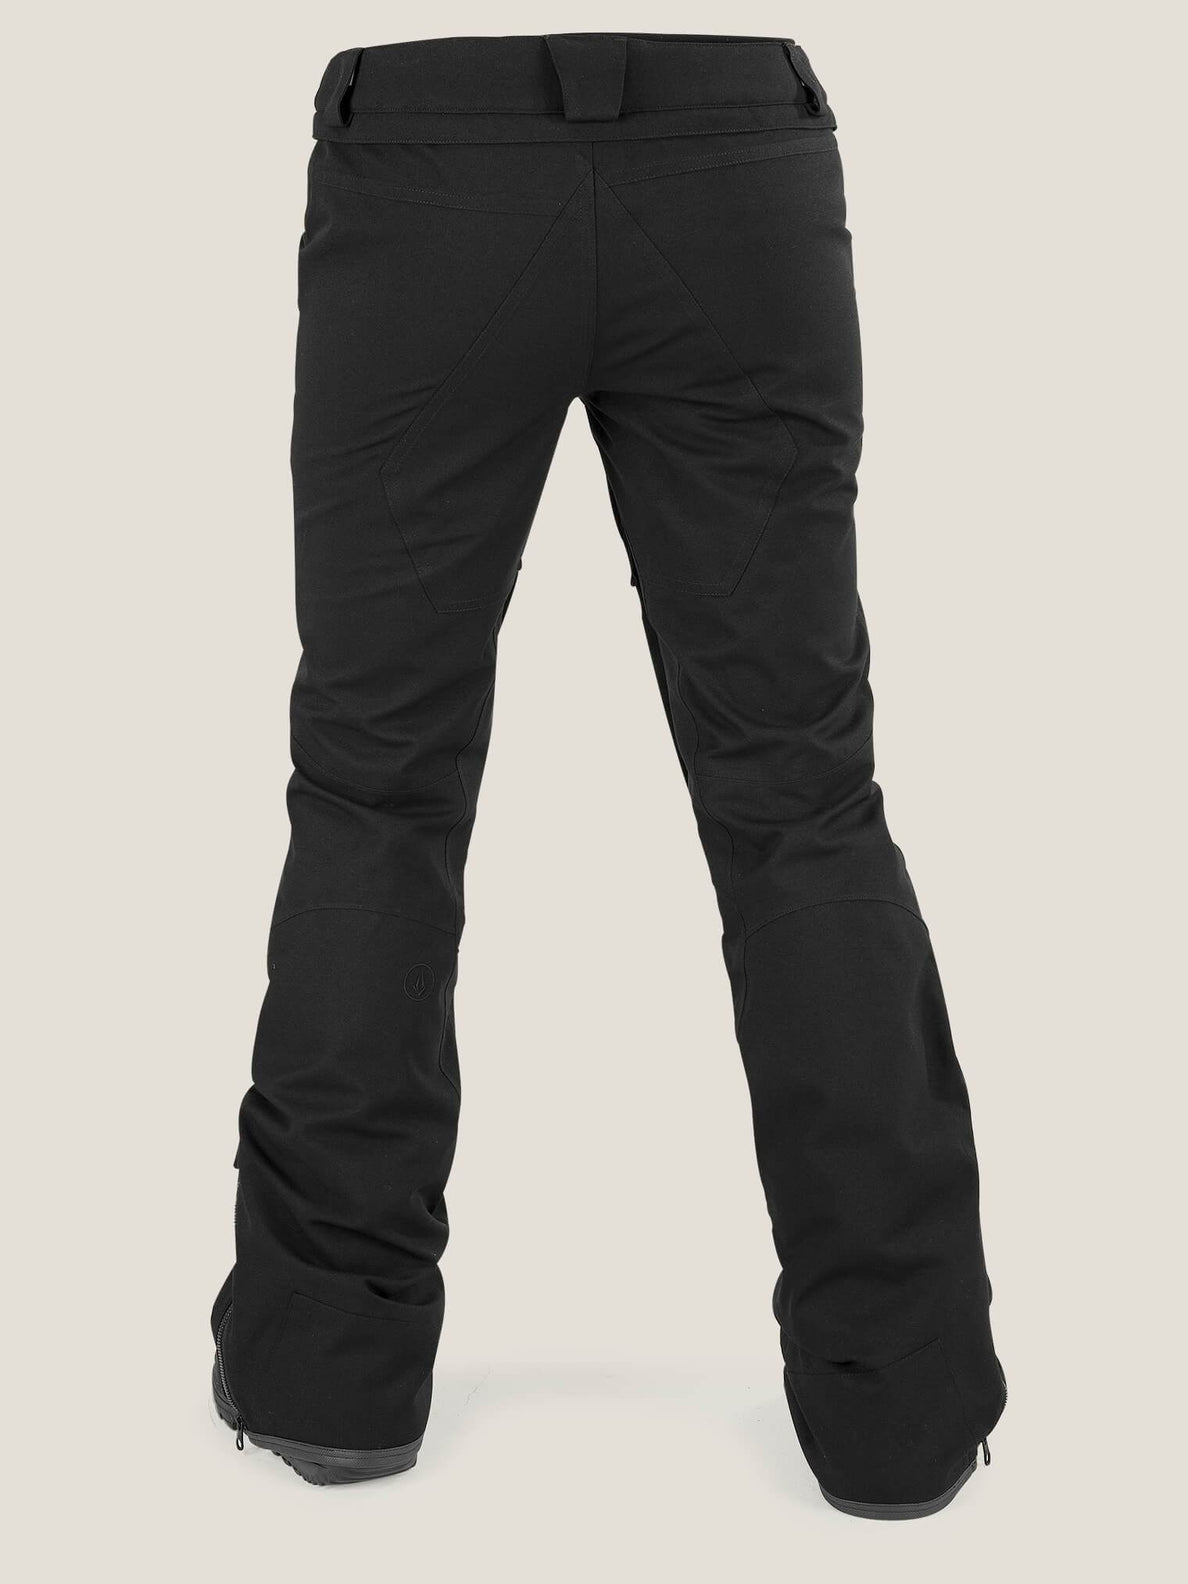 Hexie Pant In Black, Back View